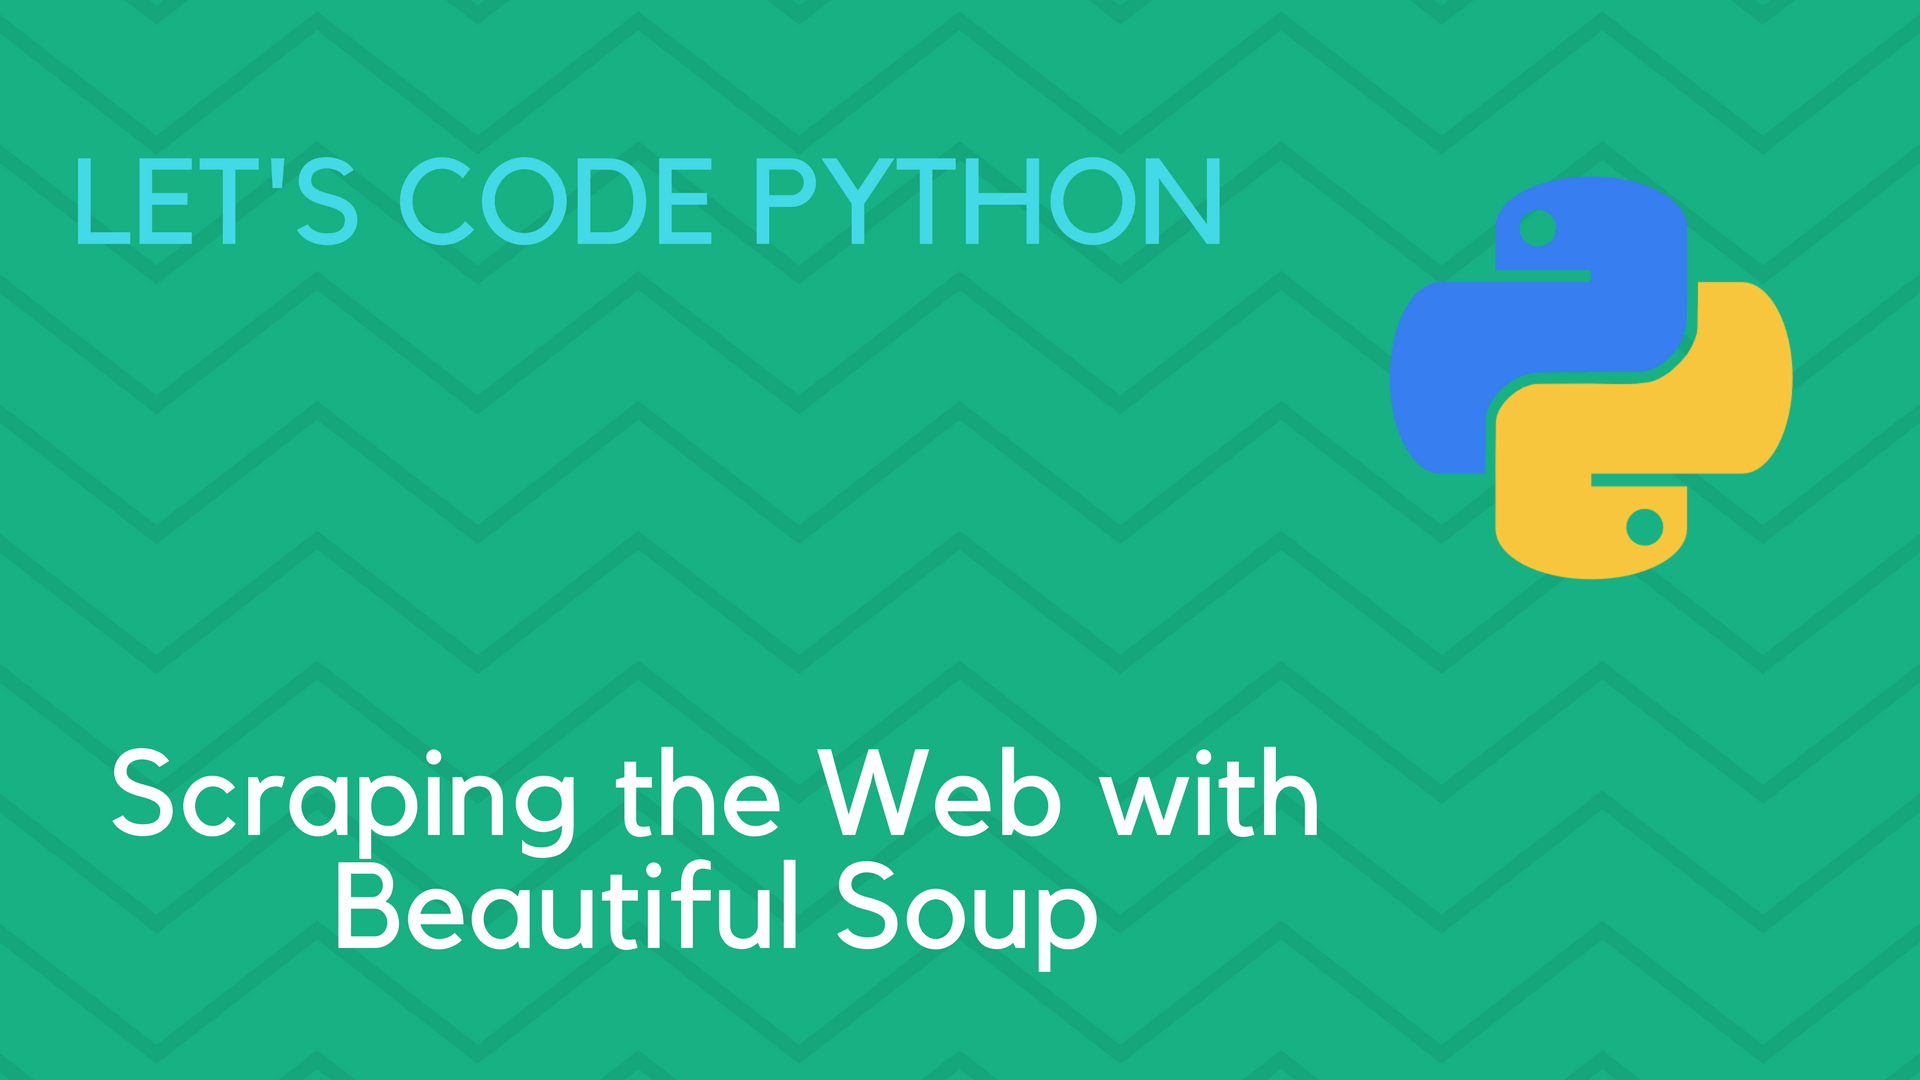 Scraping the Web with Beautiful Soup